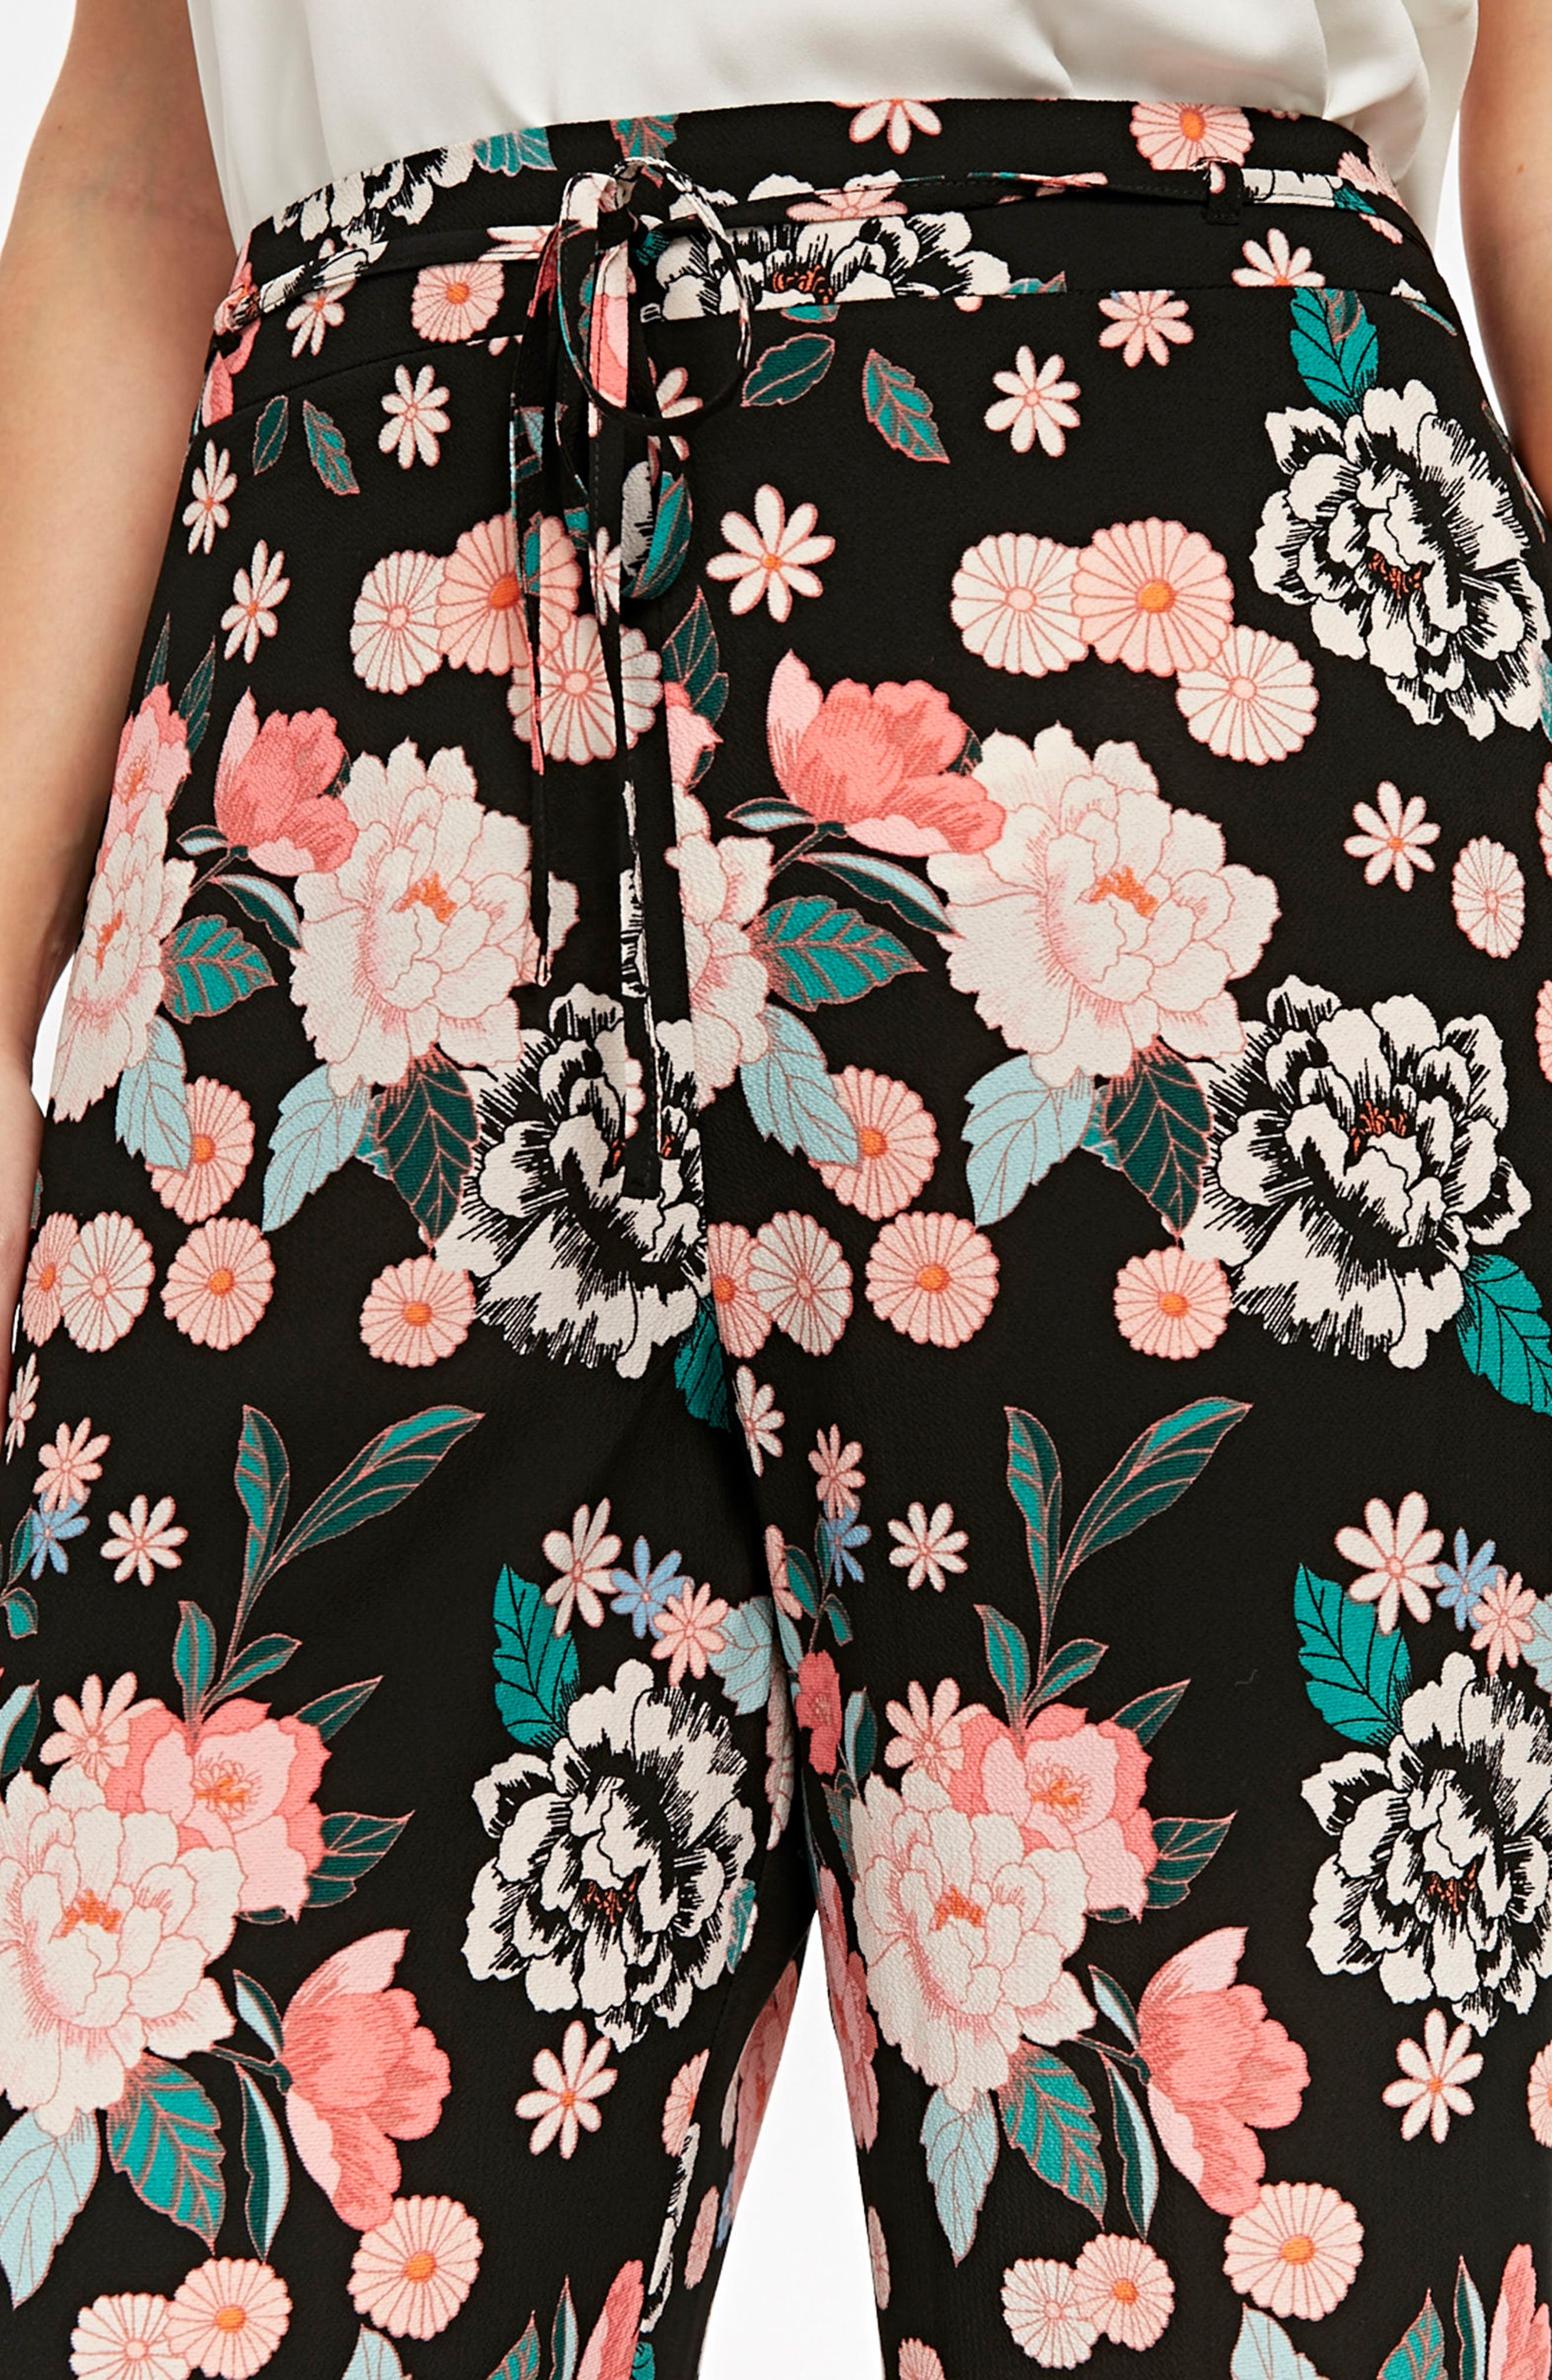 Border Floral Wide Leg Pants,                             Alternate thumbnail 3, color,                             001